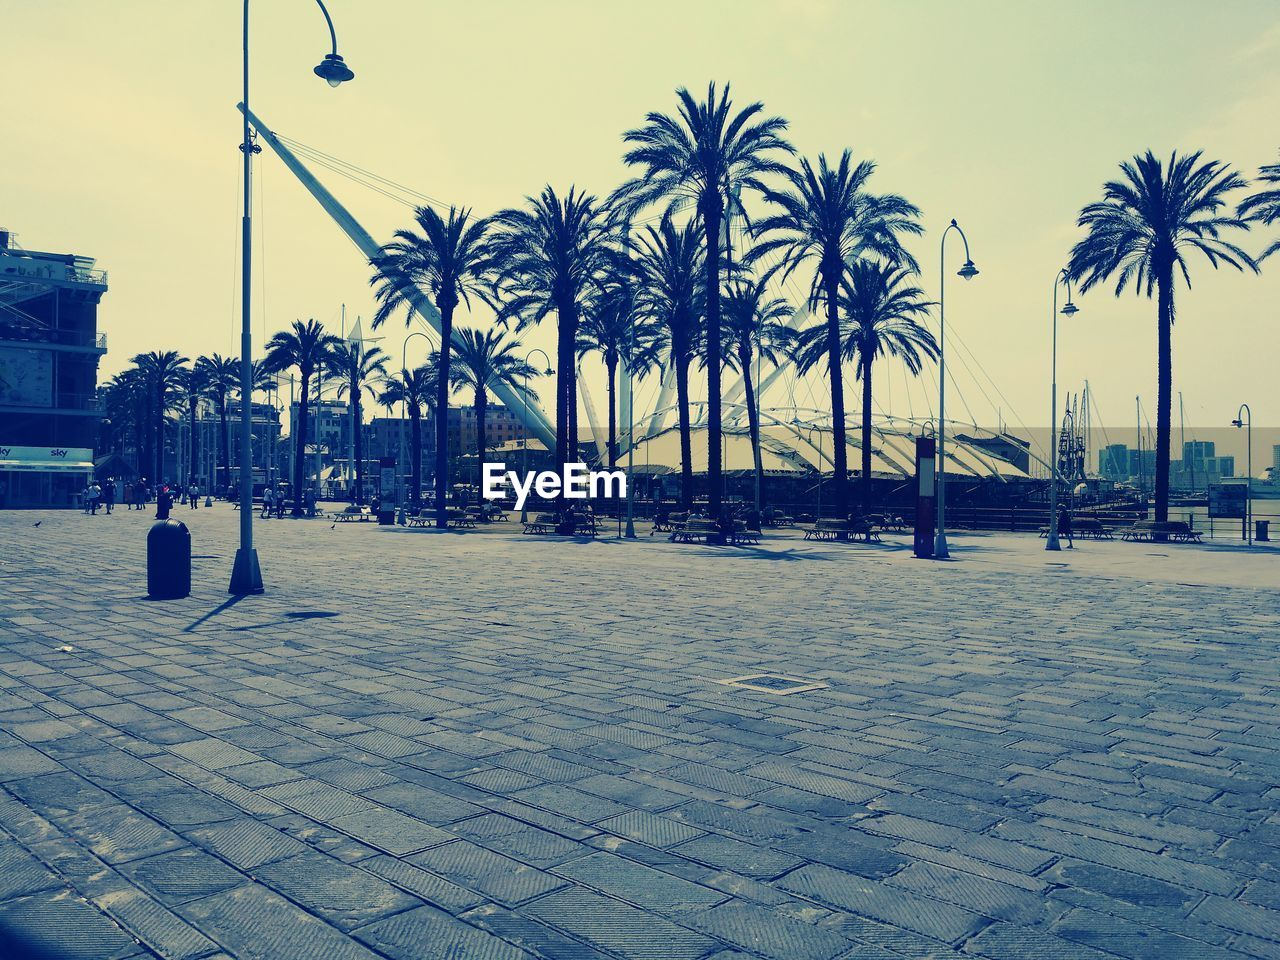 palm tree, tree, outdoors, architecture, one person, city, sky, day, people